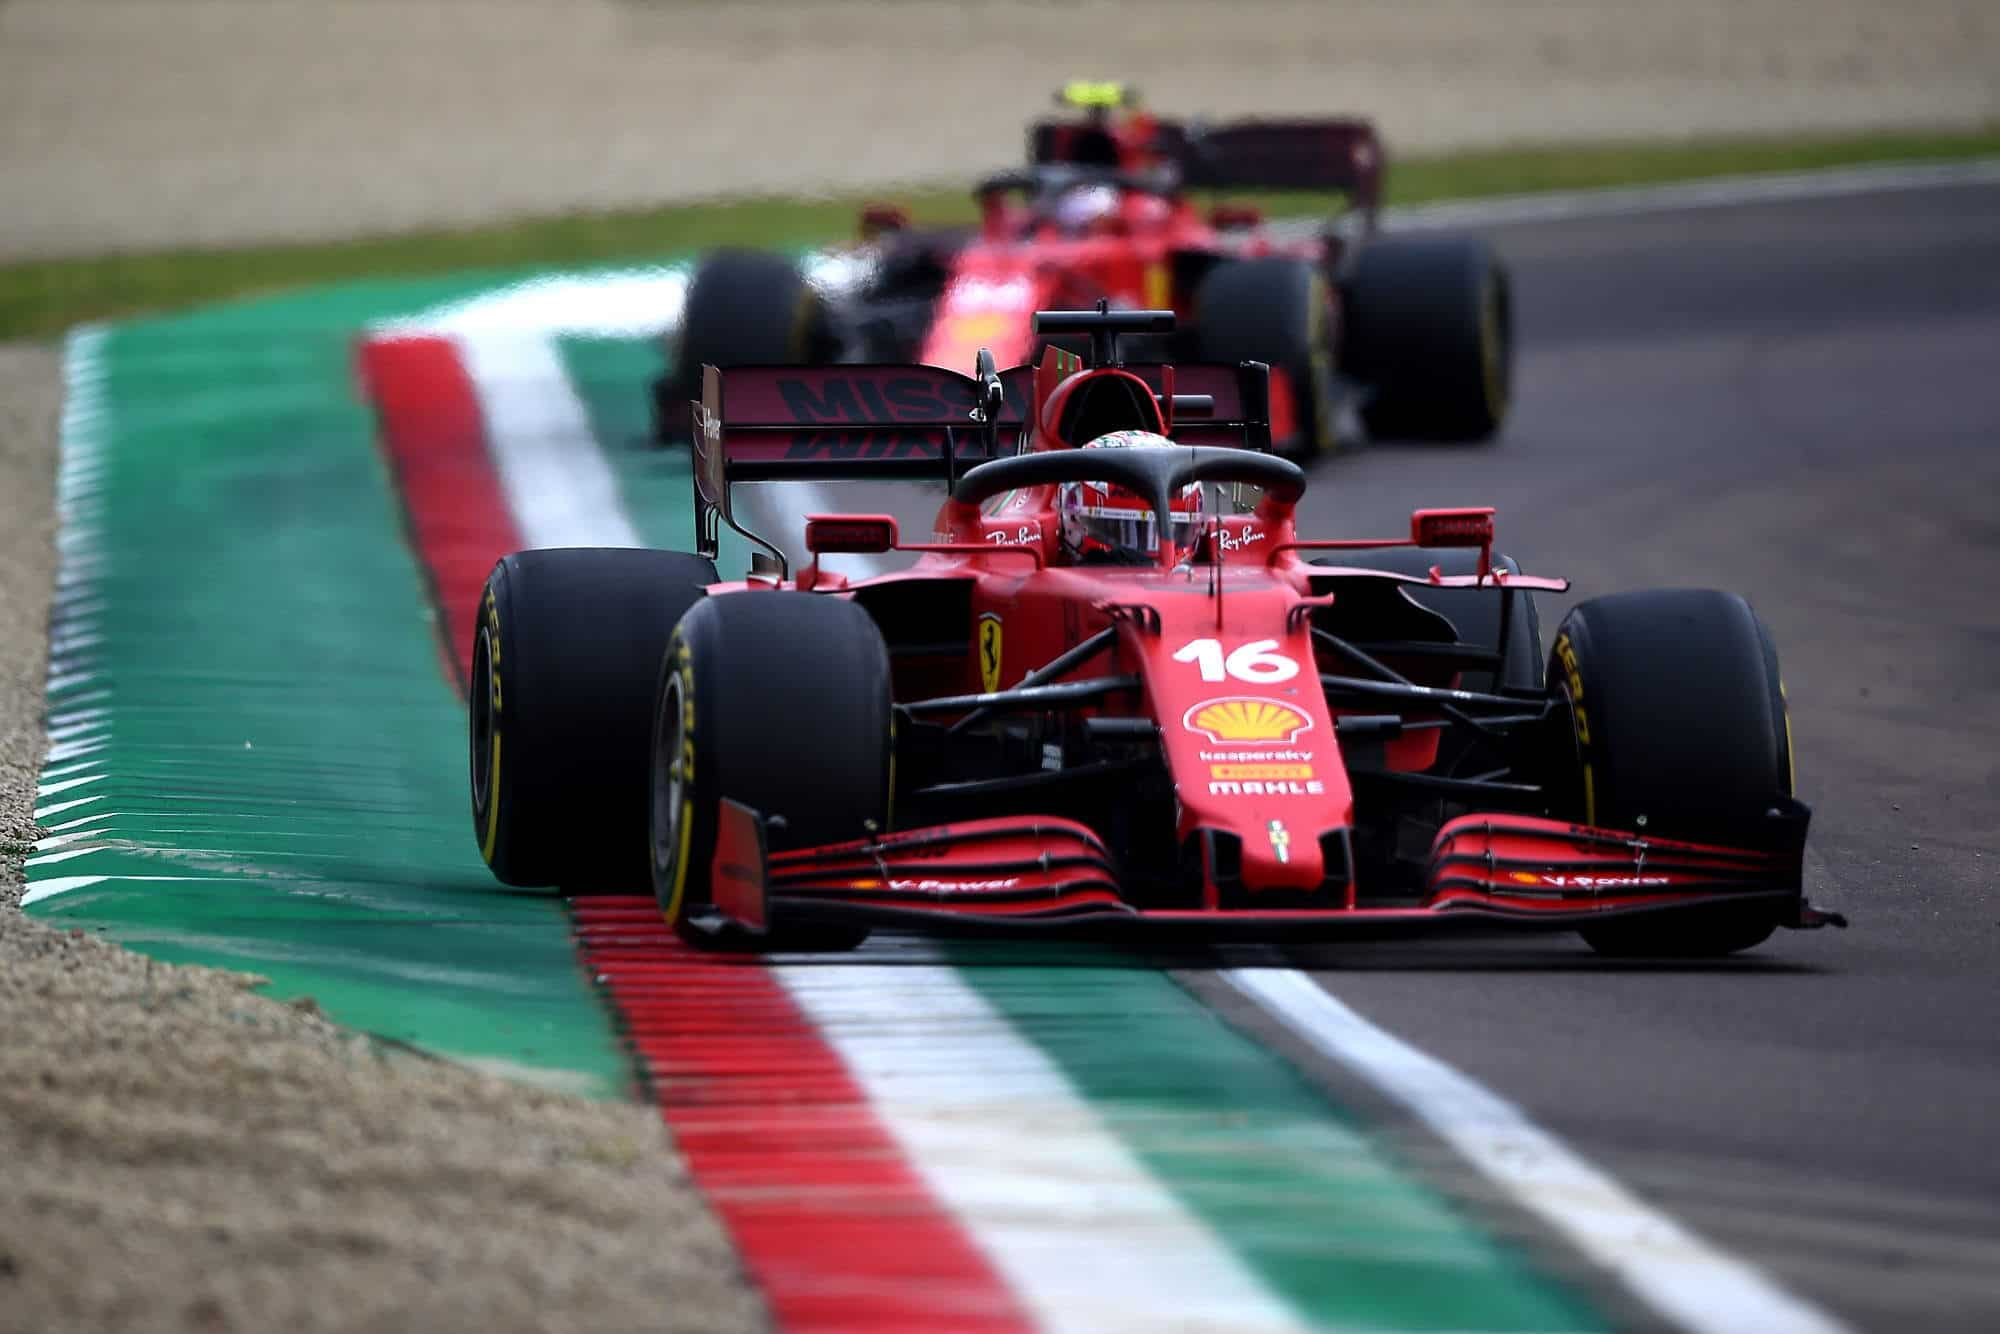 2021 Emilia Romagna GP Leclerc leads Sainz in the race Photo Ferrari